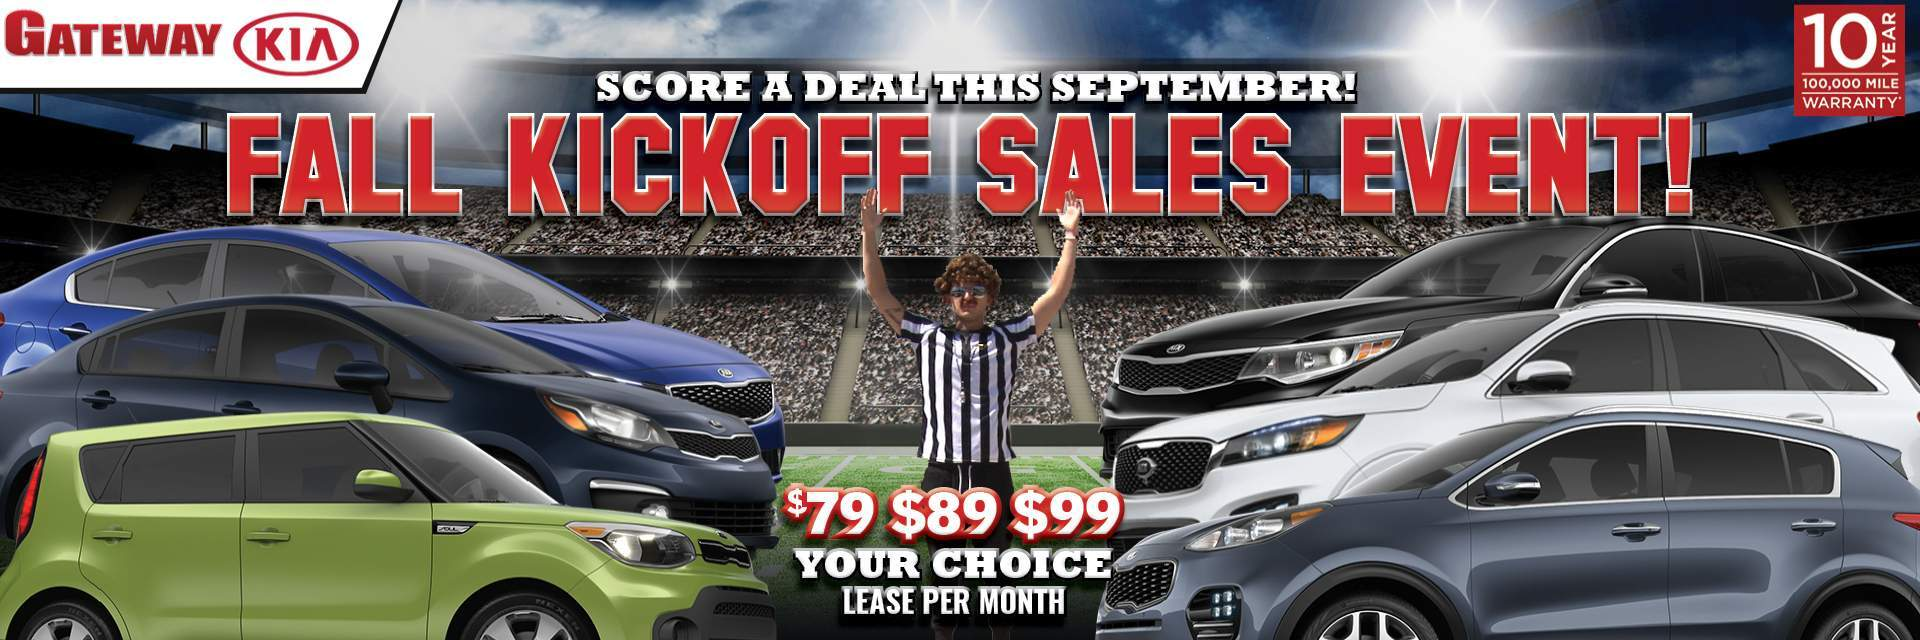 Fall Kickoff Sales Event